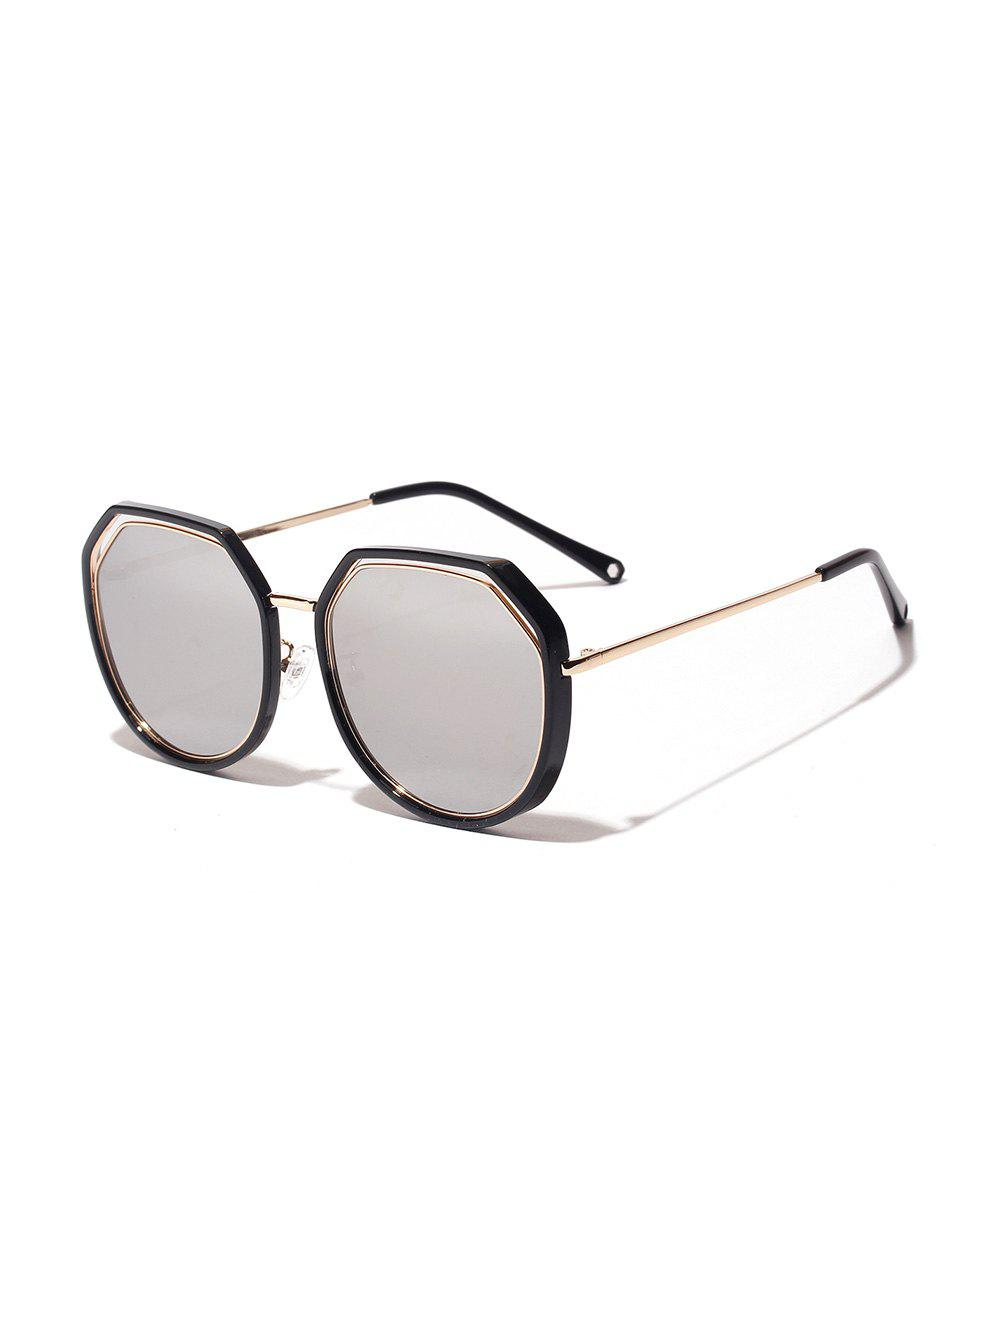 Unique Irregular Double Frame Sunglasses